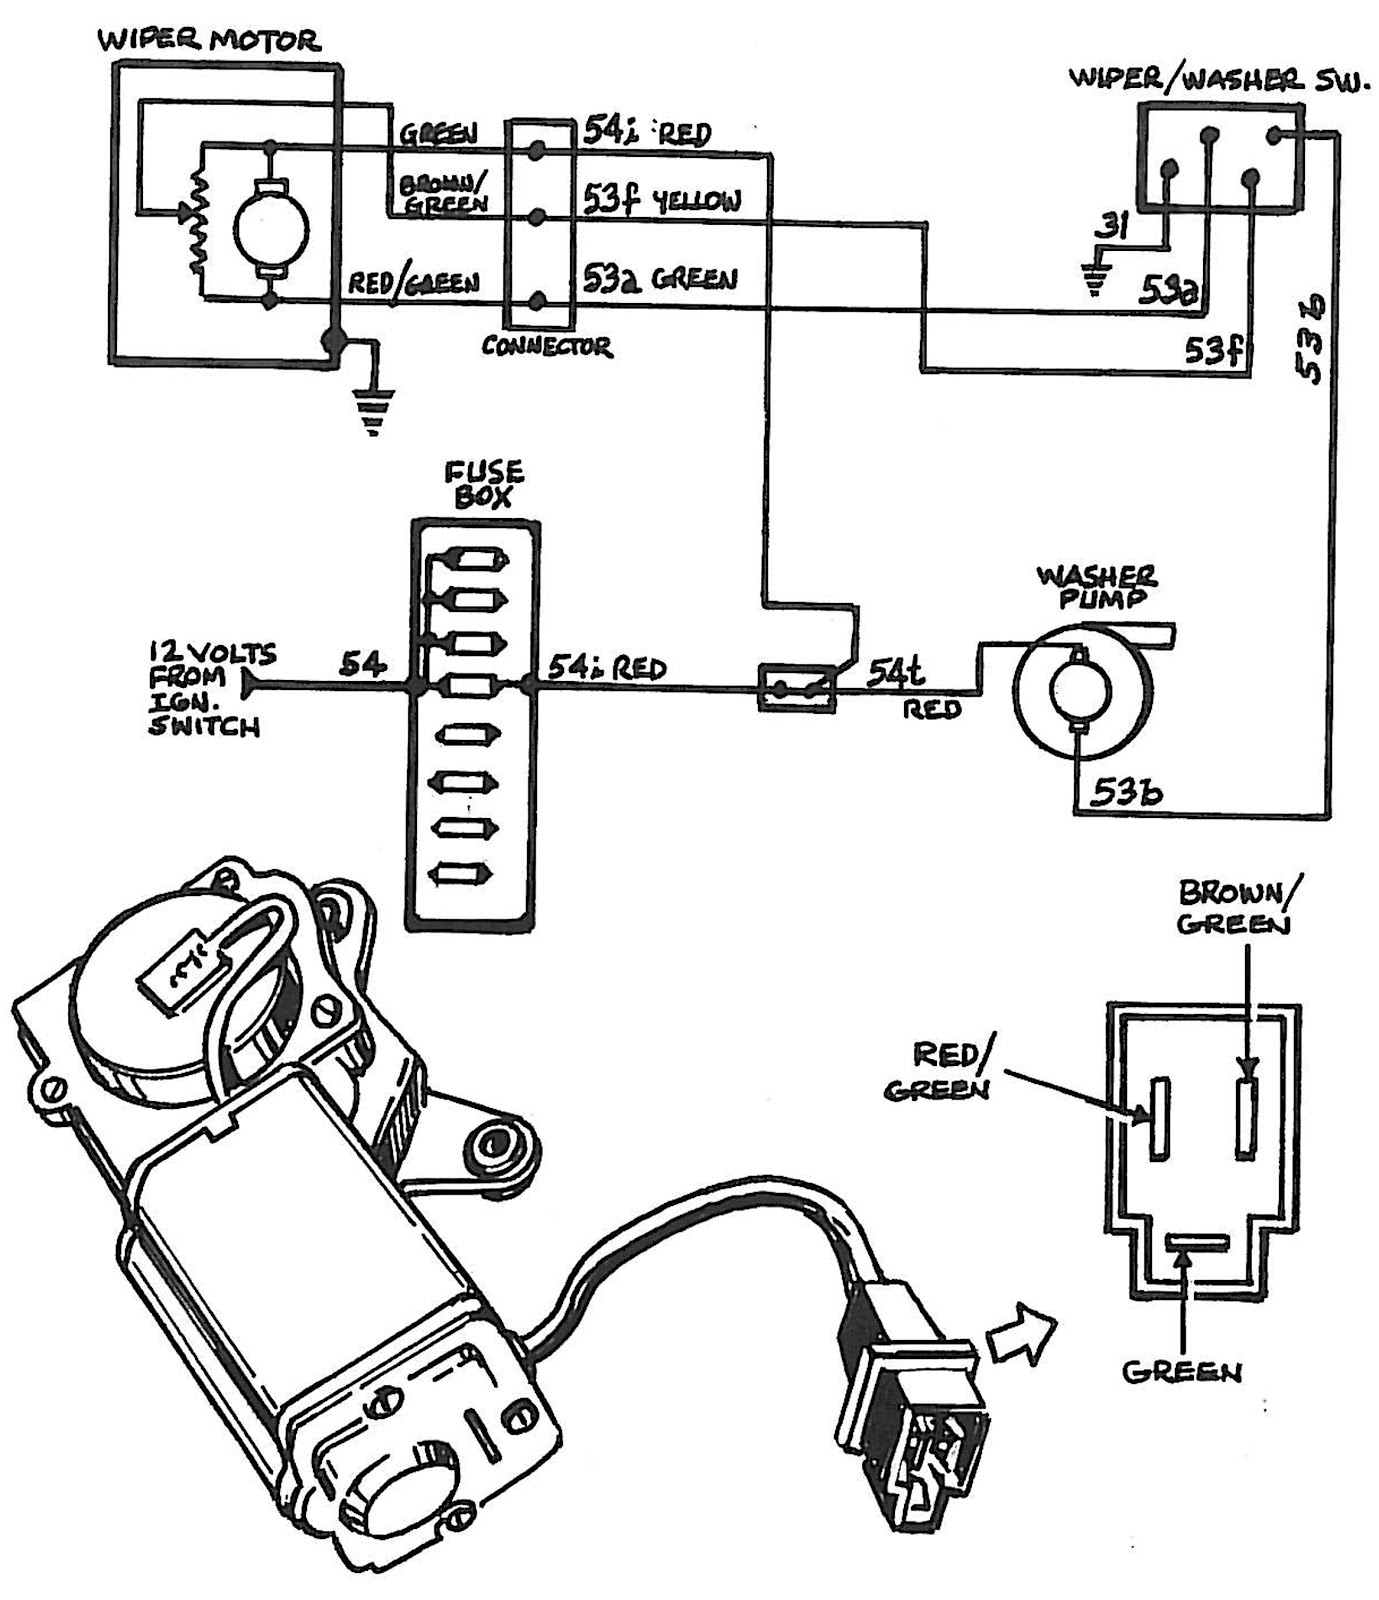 Chevrolet Wiper Wiring Diagram on 99 explorer fuse box diagram